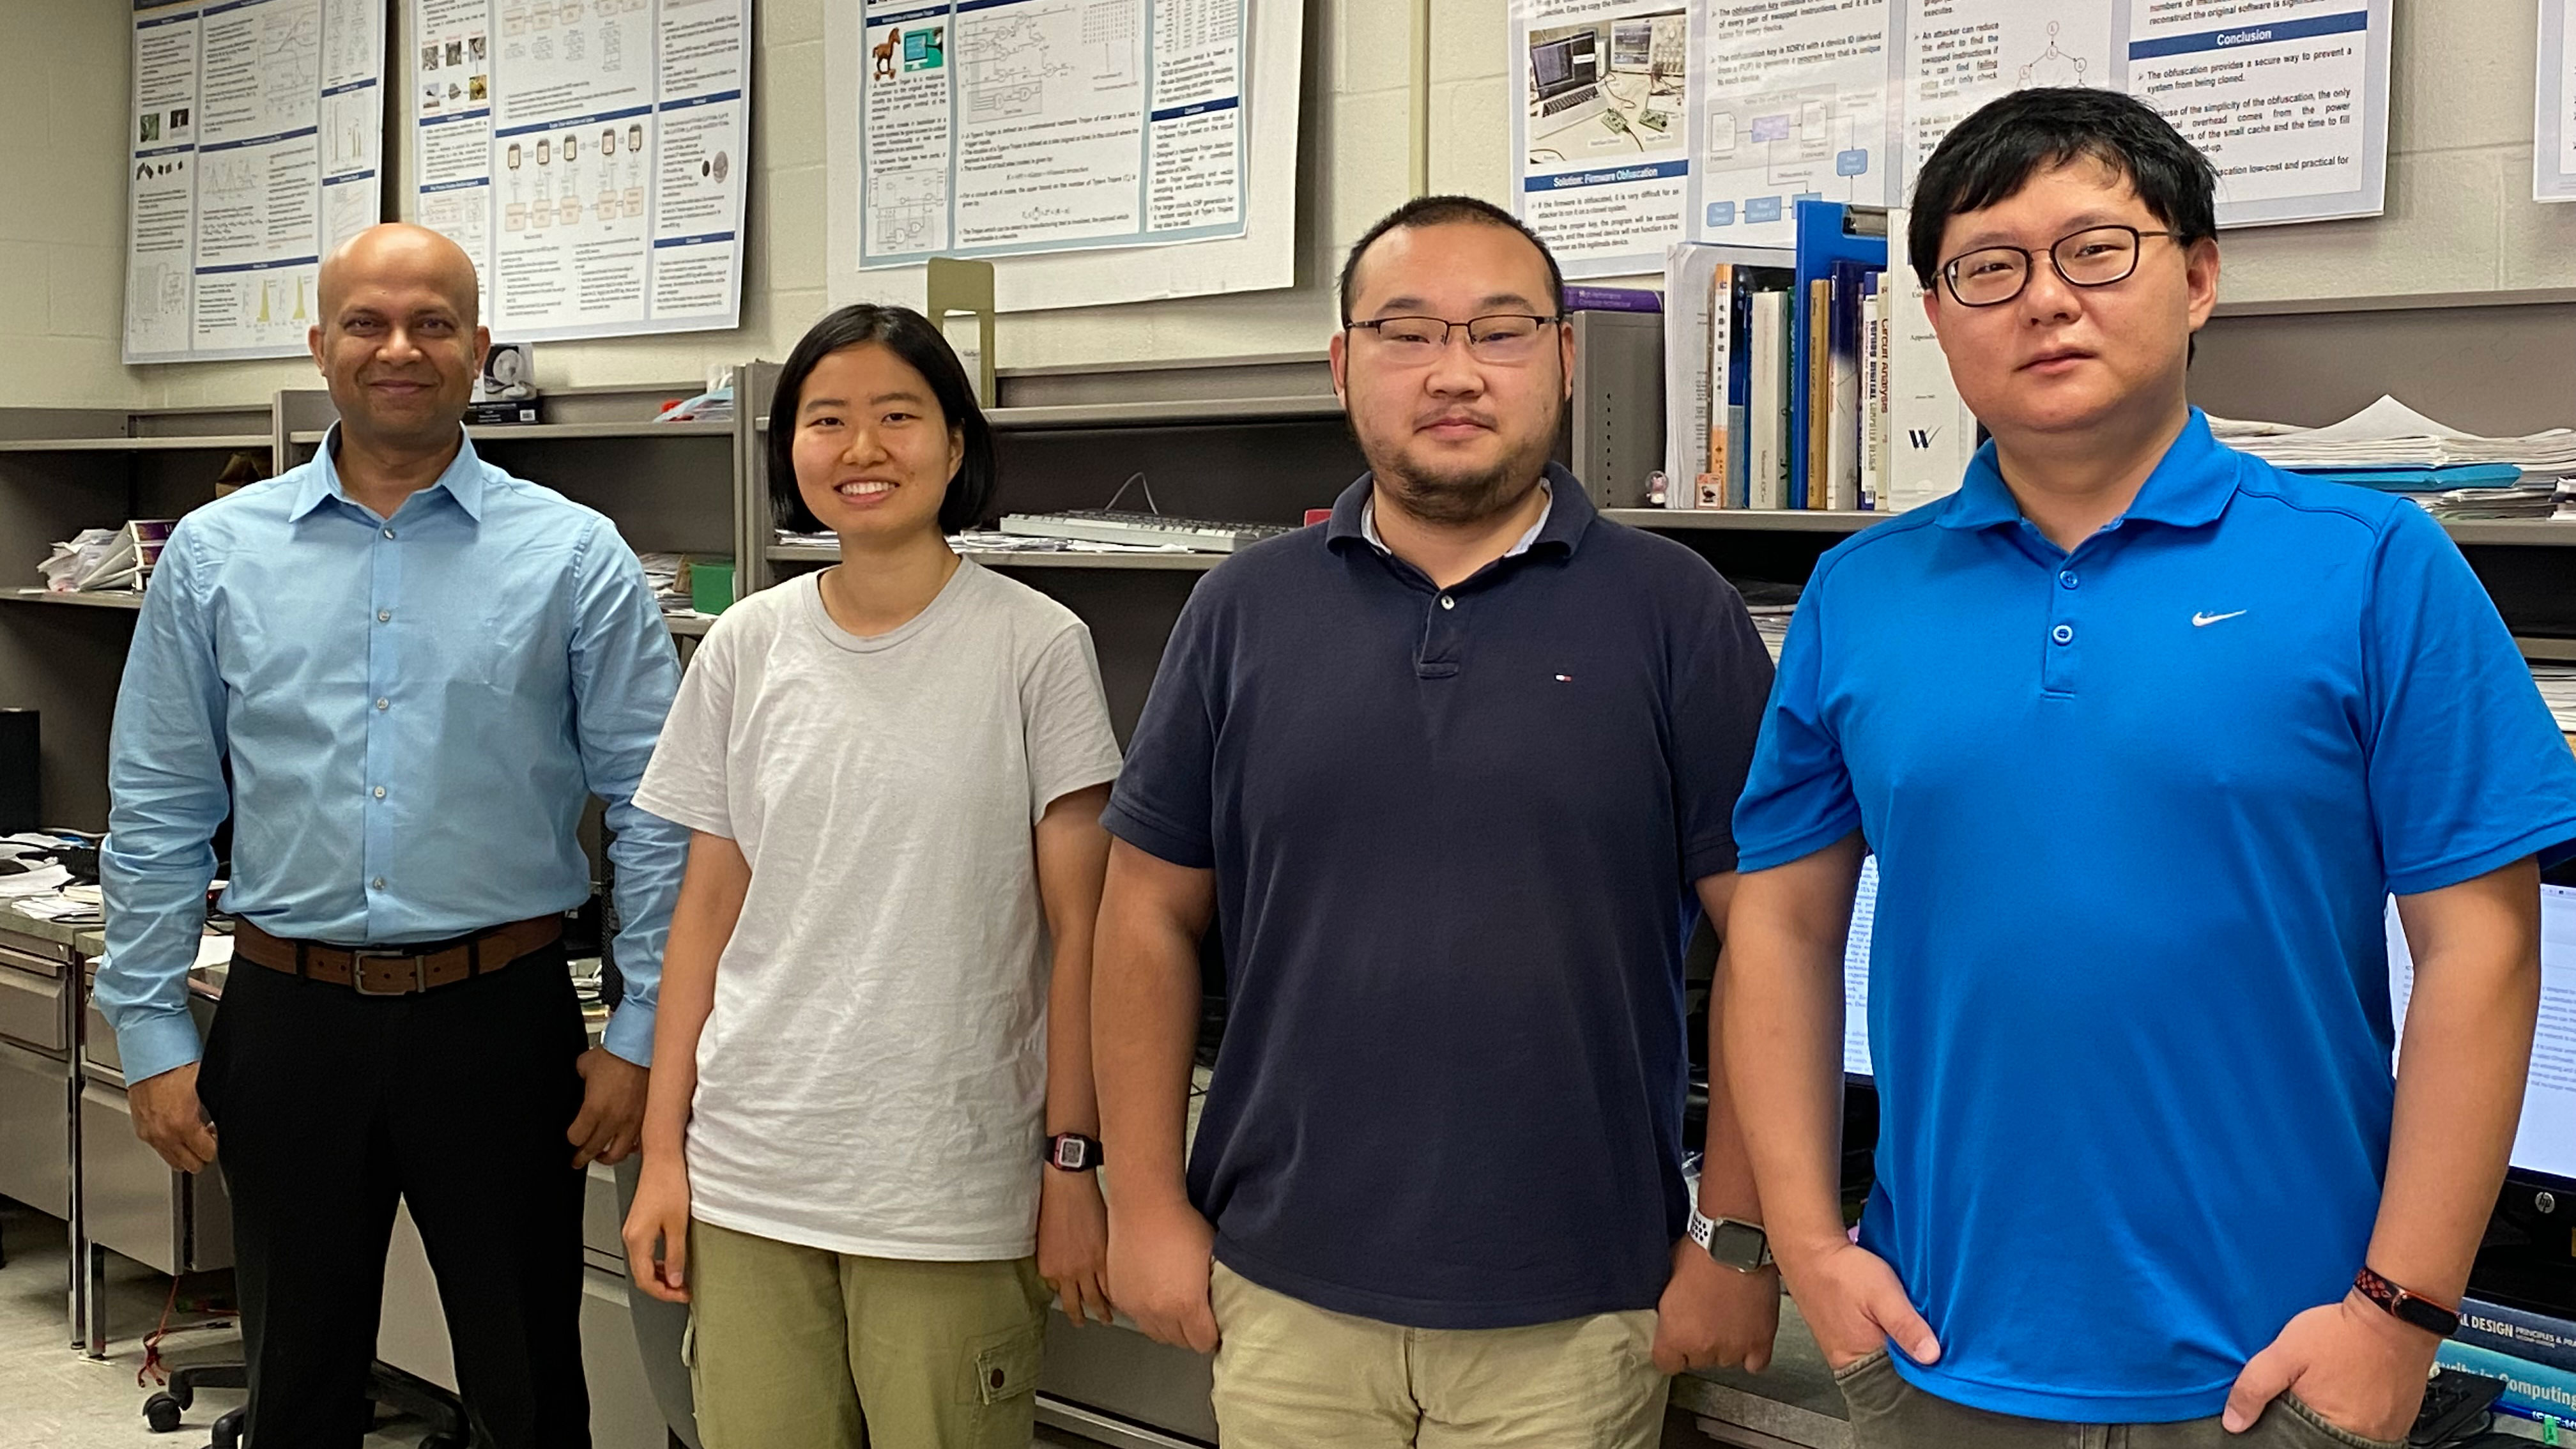 Dr. Ujjwal Guin, assistant professor in electrical and computer engineering, with graduate students Yadi Zhong, Yuqiao Zhang, and Ziqi Zhou.